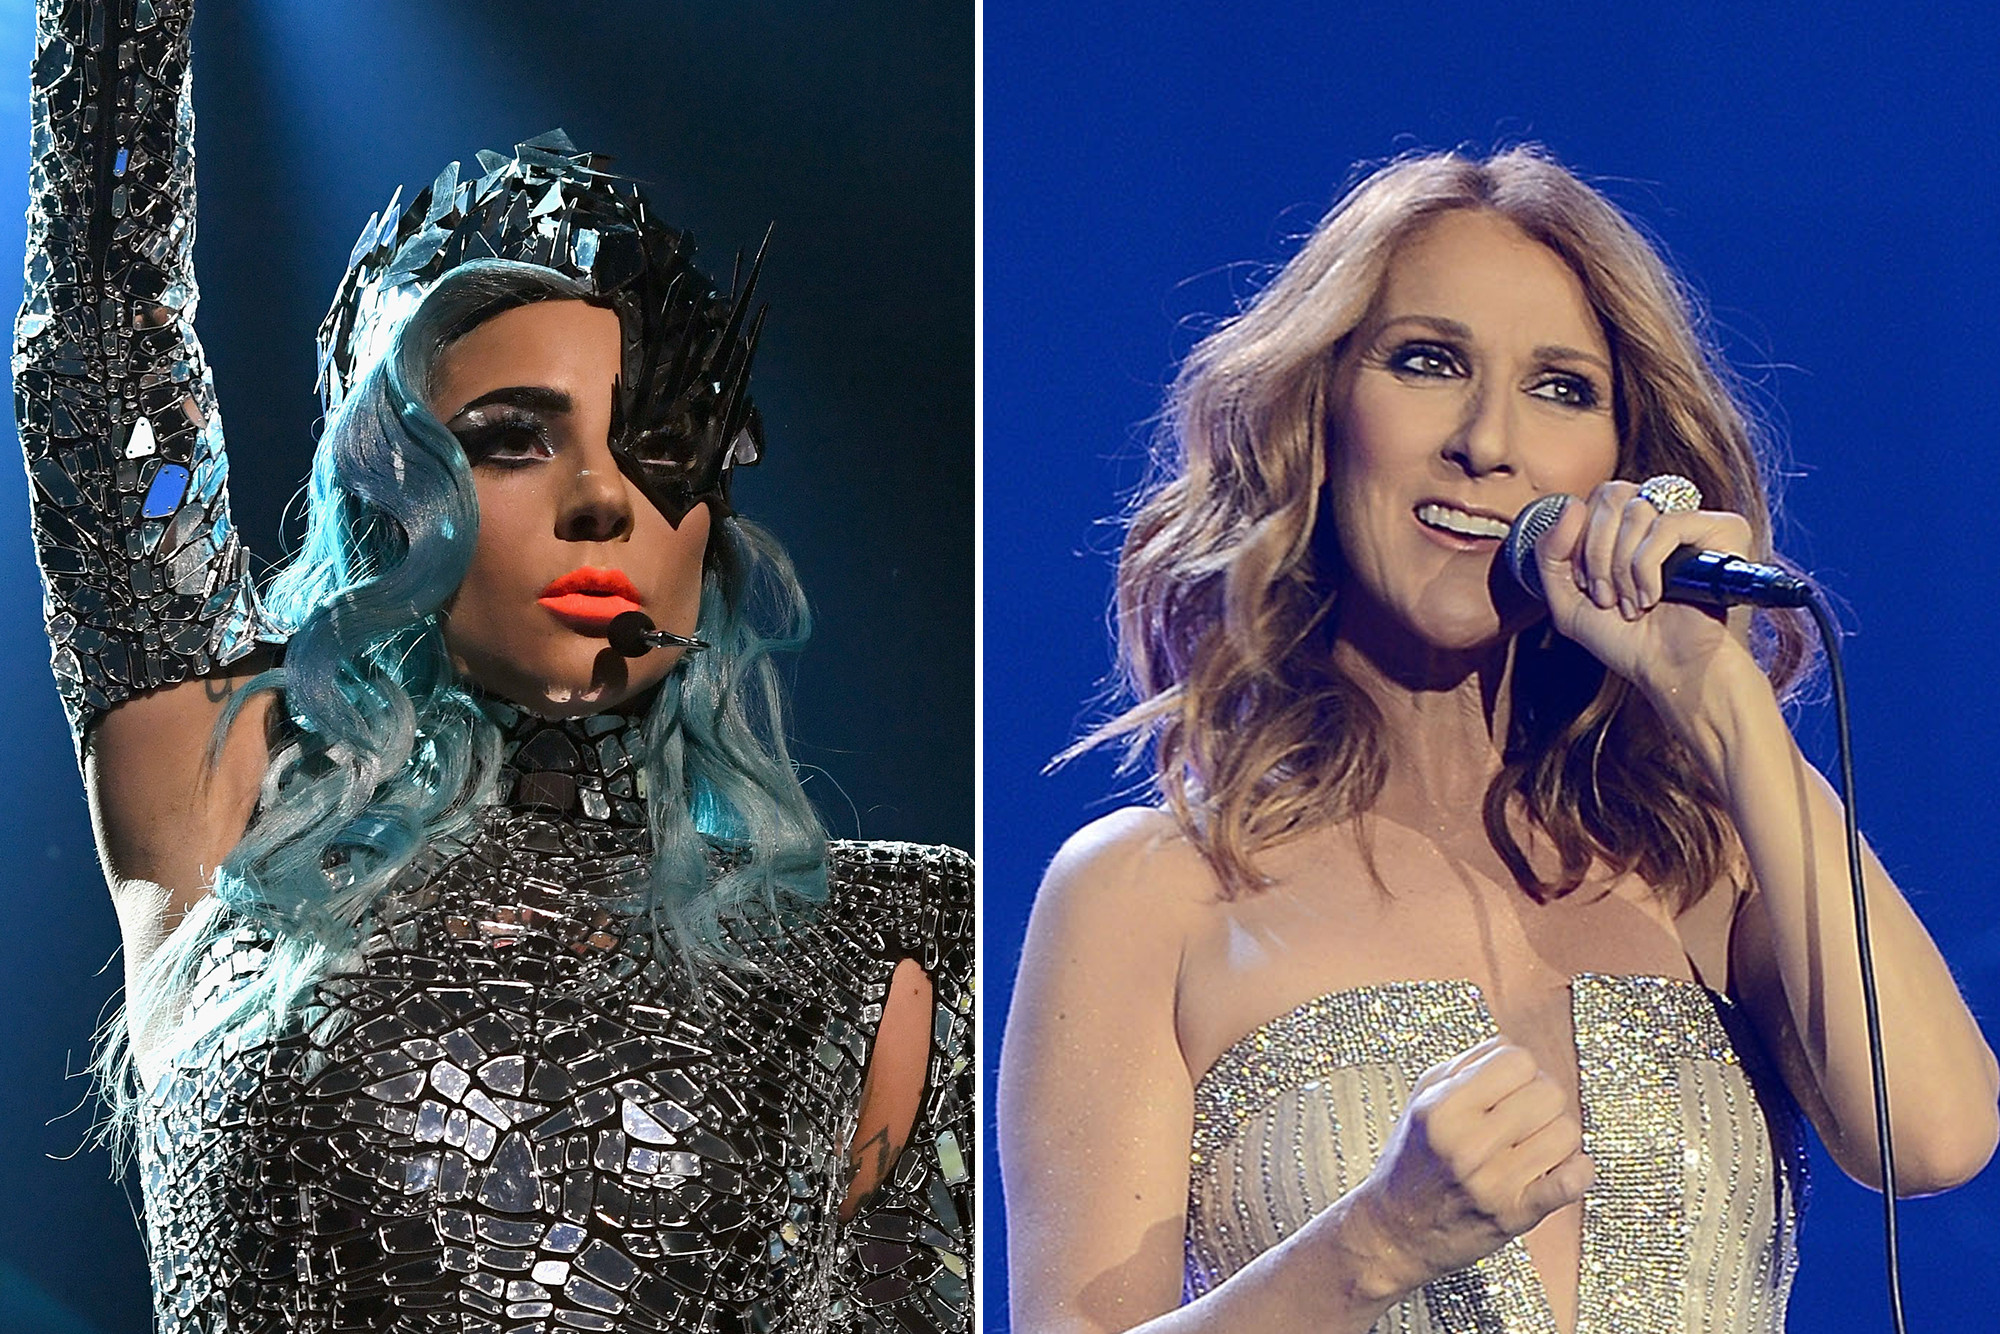 Céline Dion had the best time at Lady Gaga's Vegas show